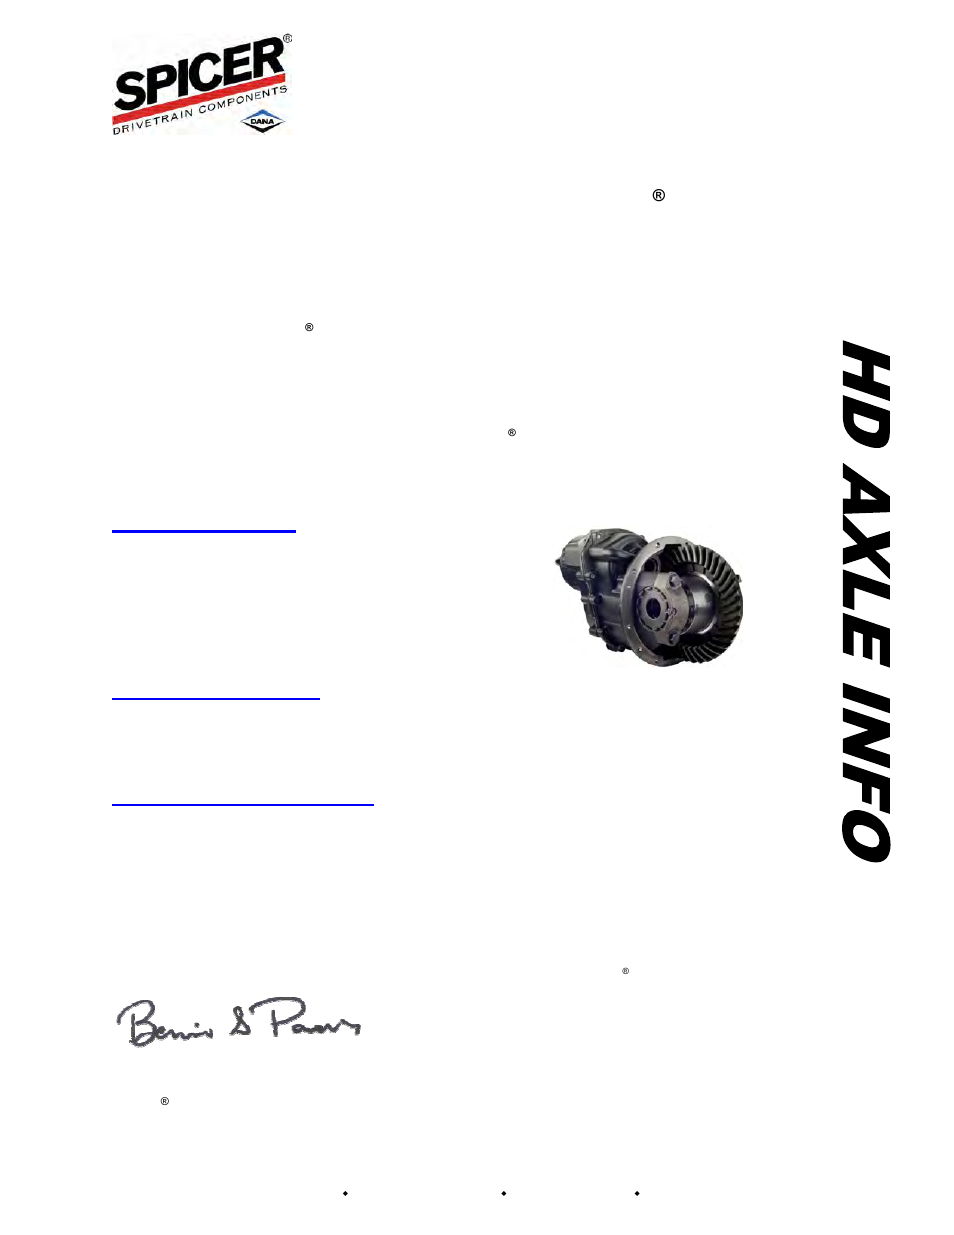 tecumseh engine parts manual hh60 105106f Array - ds404 parts manual rh  ds404 parts manual spirulinas de